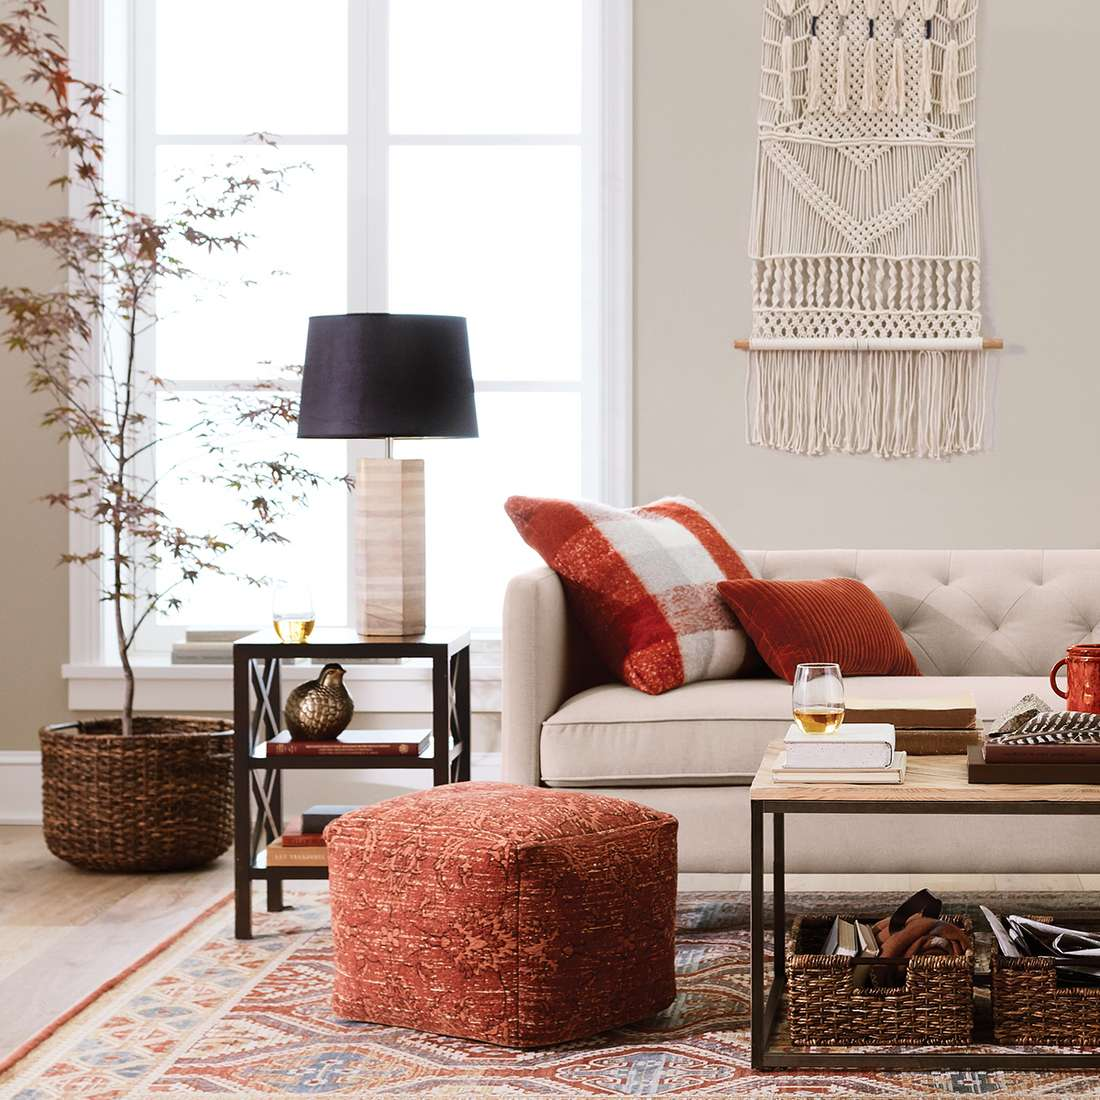 Living Room Ideas To Fall In Love With: Home Ideas, Design & Inspiration : Target